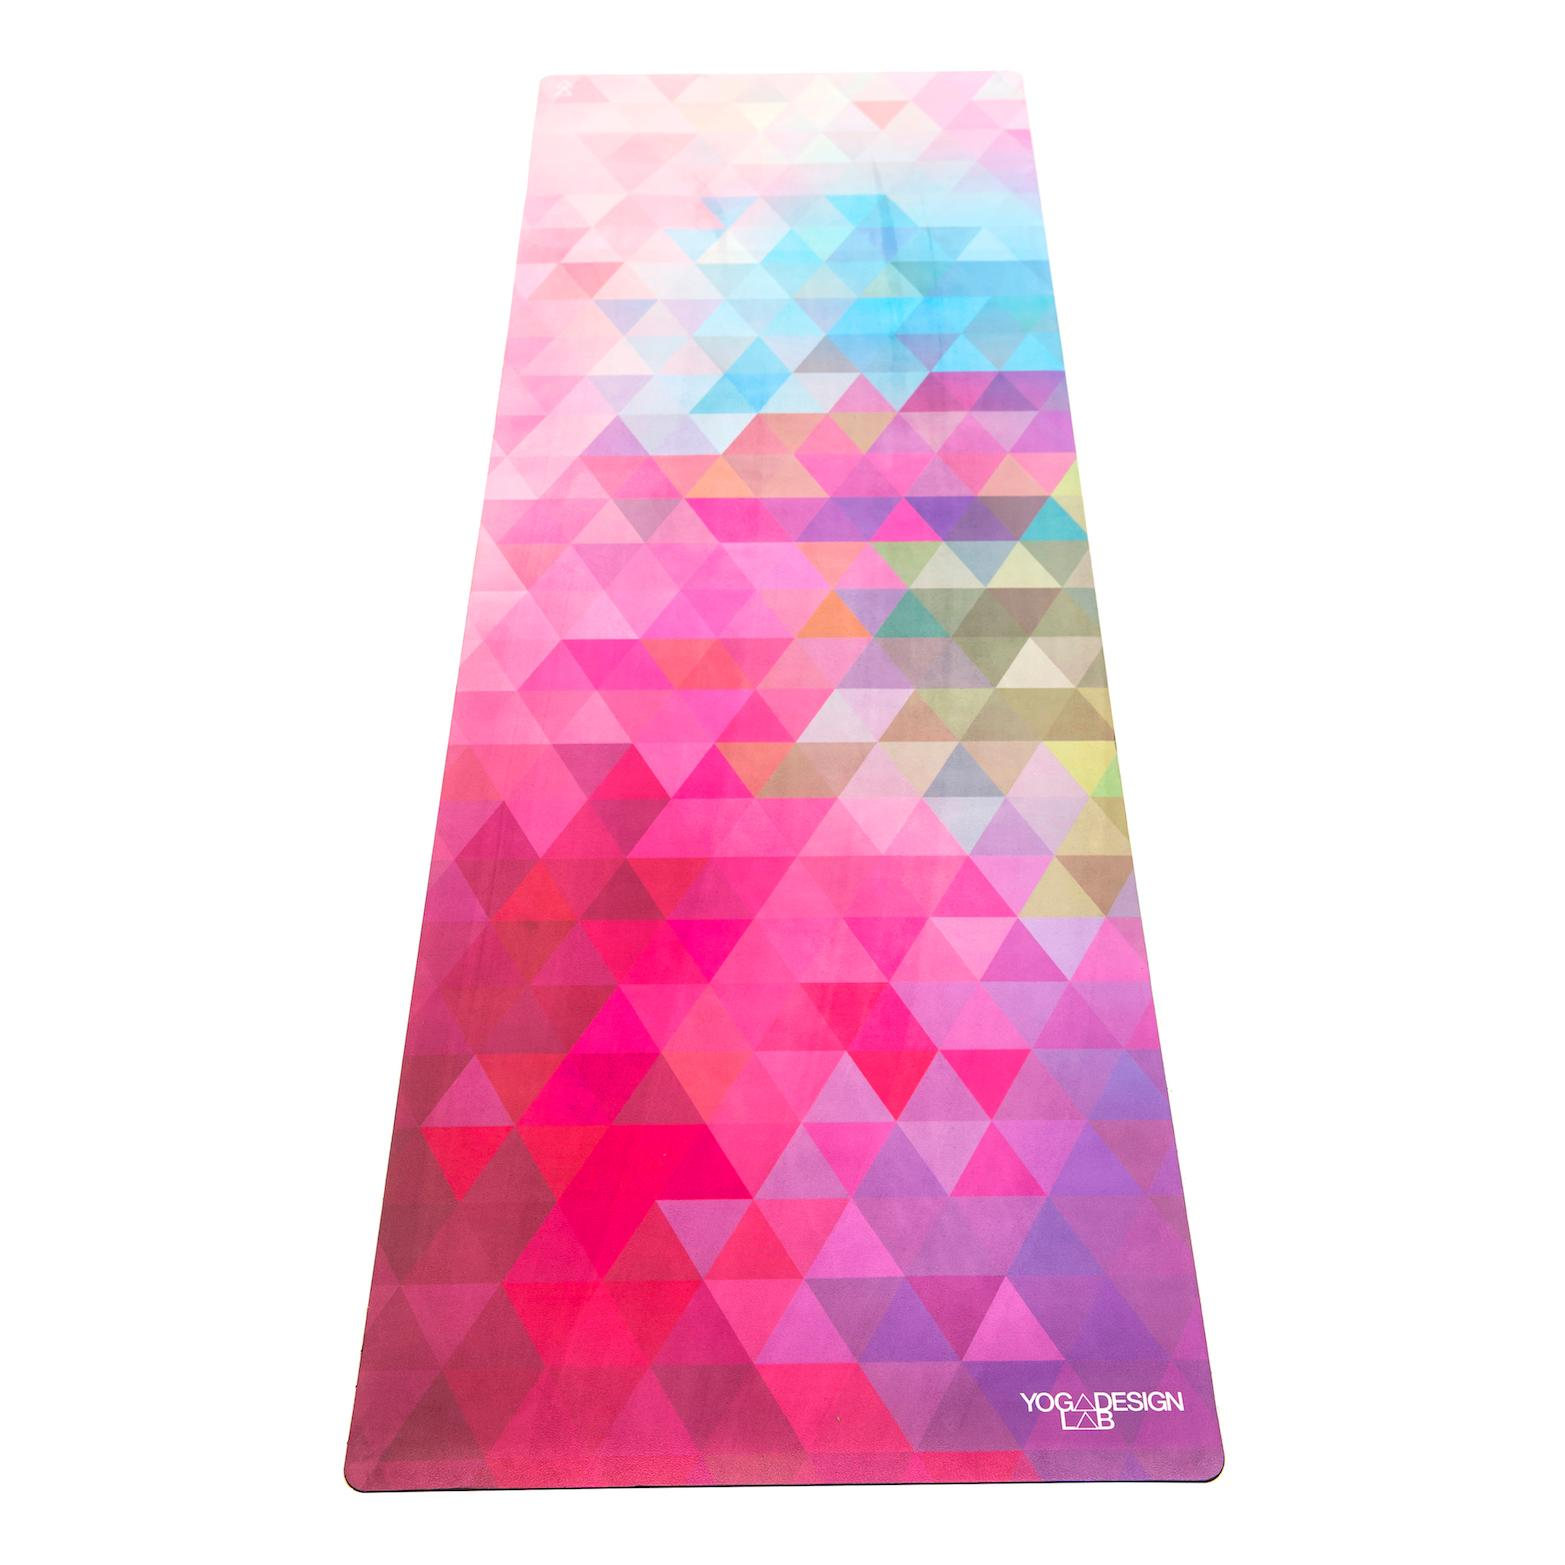 1.5mm New Travel Mat - Tribeca Sand